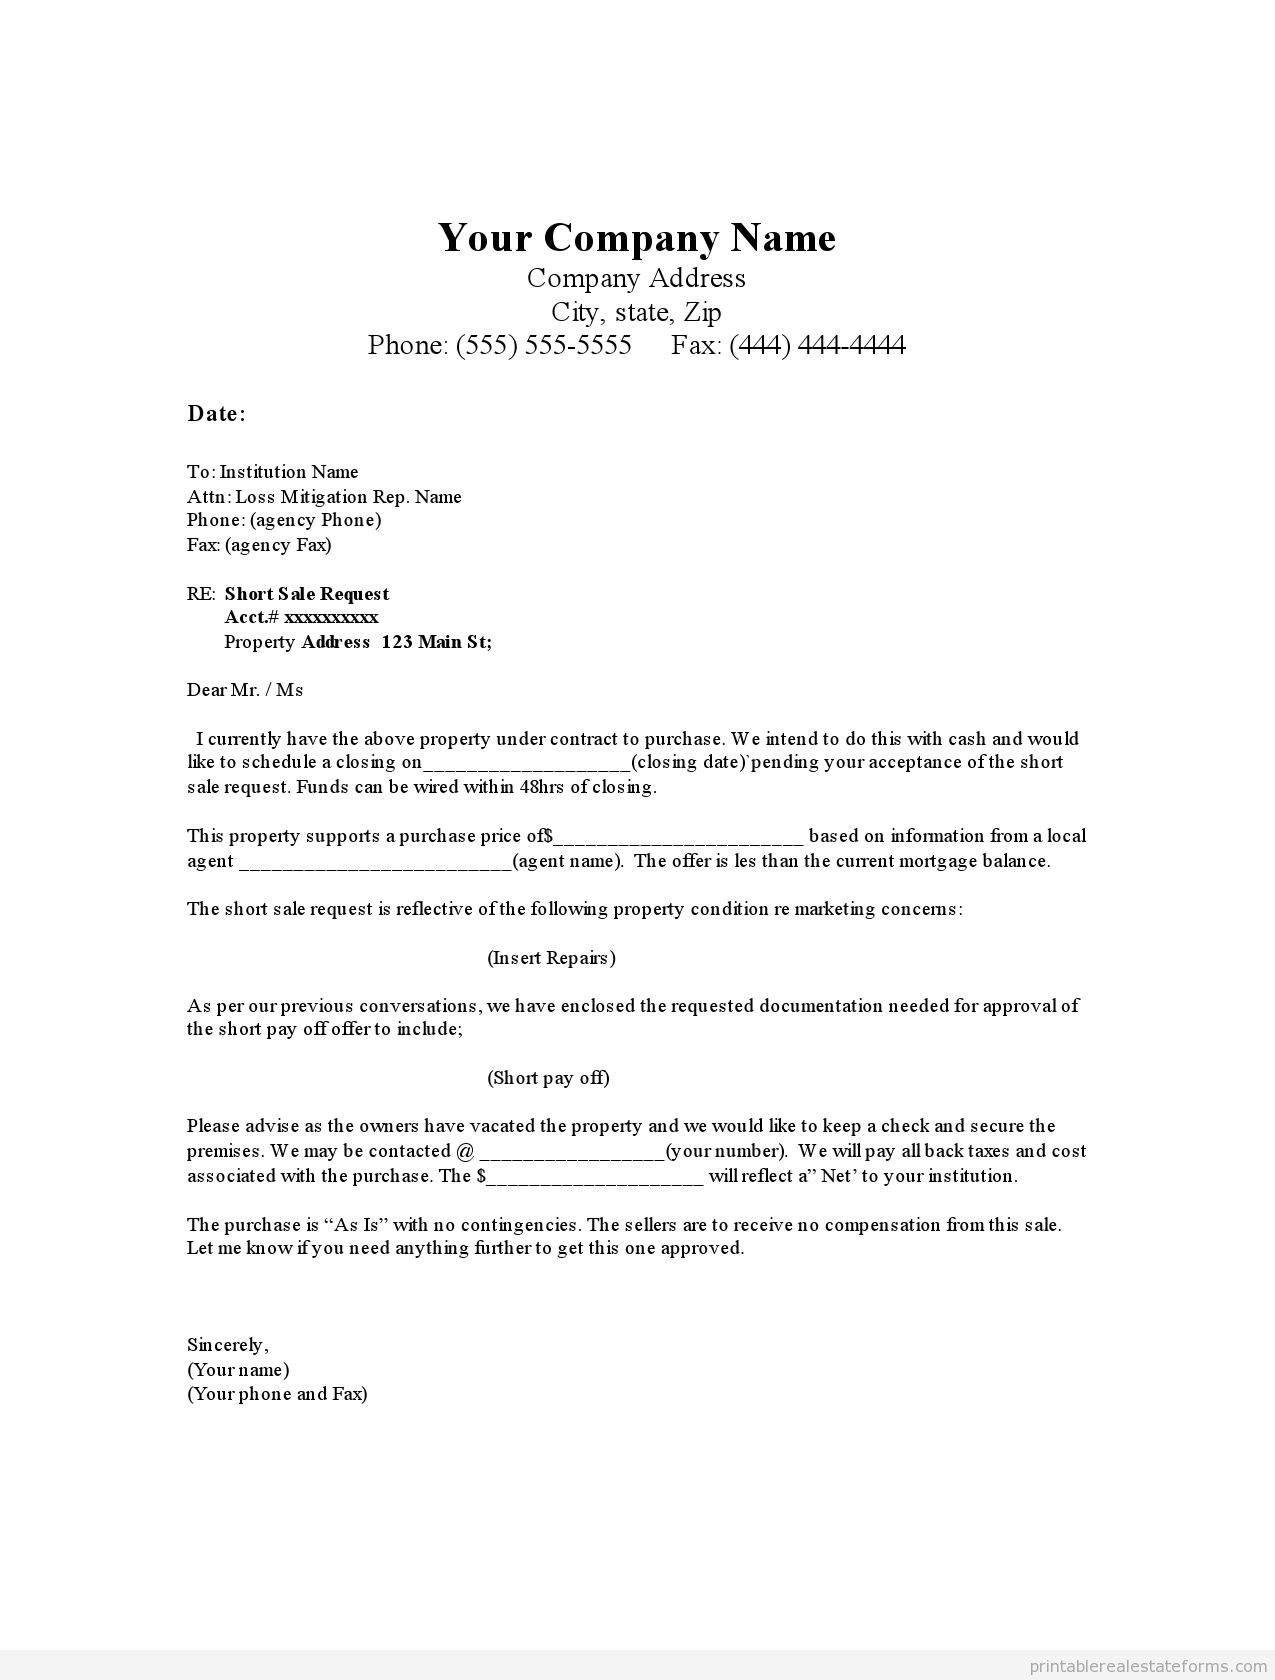 for sale by owner offer letter template